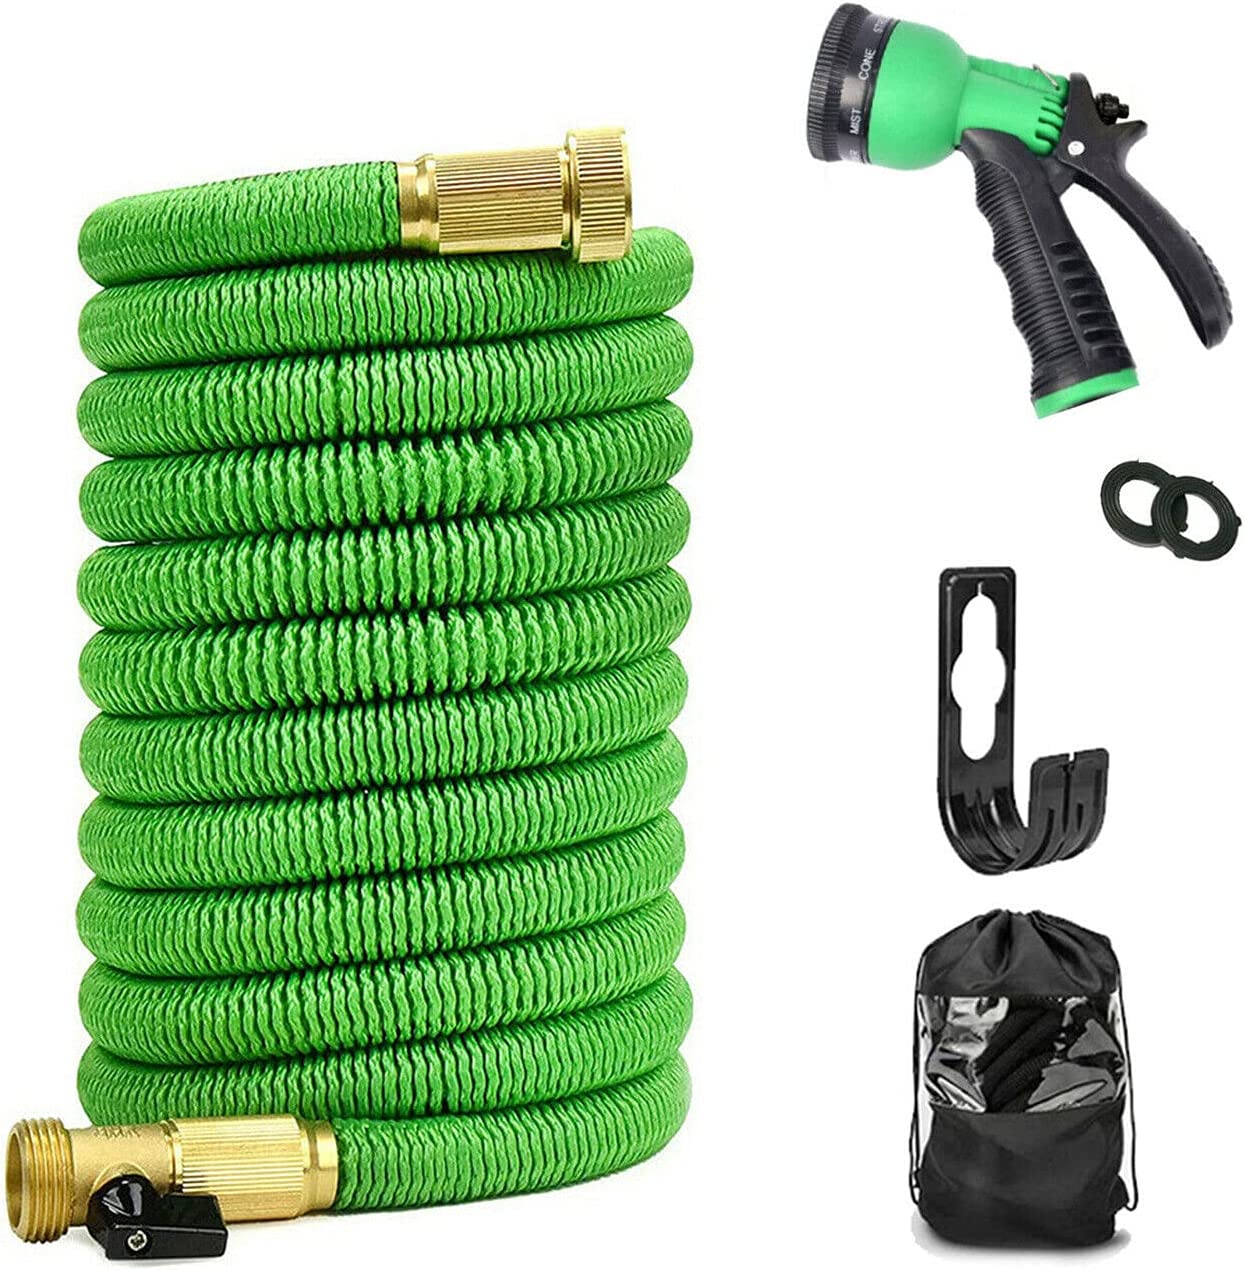 Pyladea Expandable Max 76% OFF Garden Hose with Function 8 Ligh Nozzle Overseas parallel import regular item